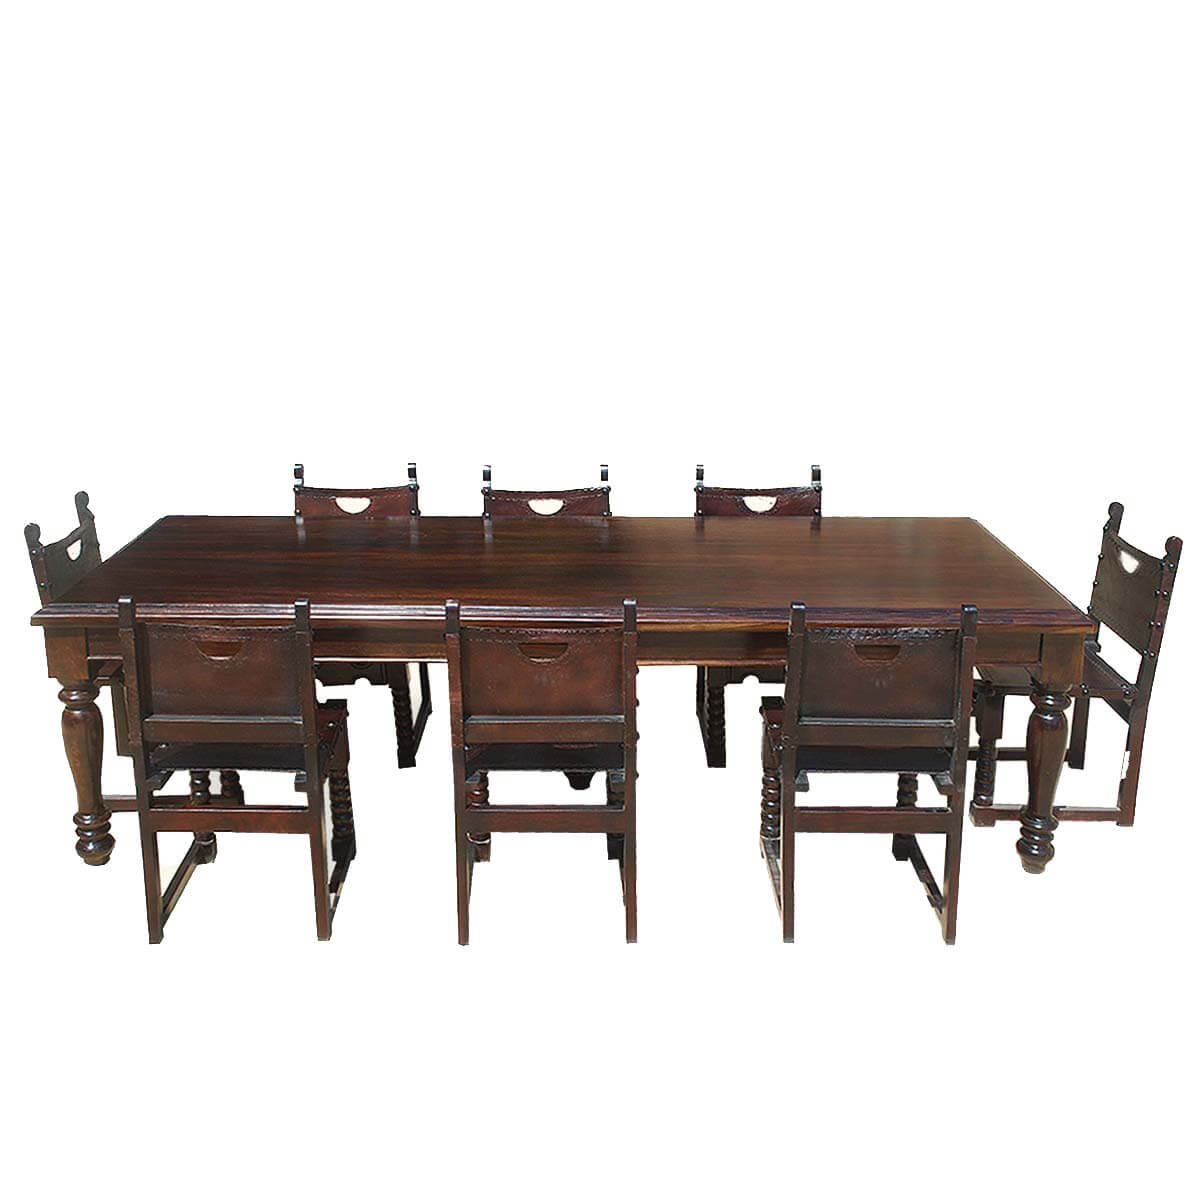 Large rustic solid wood dining room table w 8 leather for 8 chair dining room table